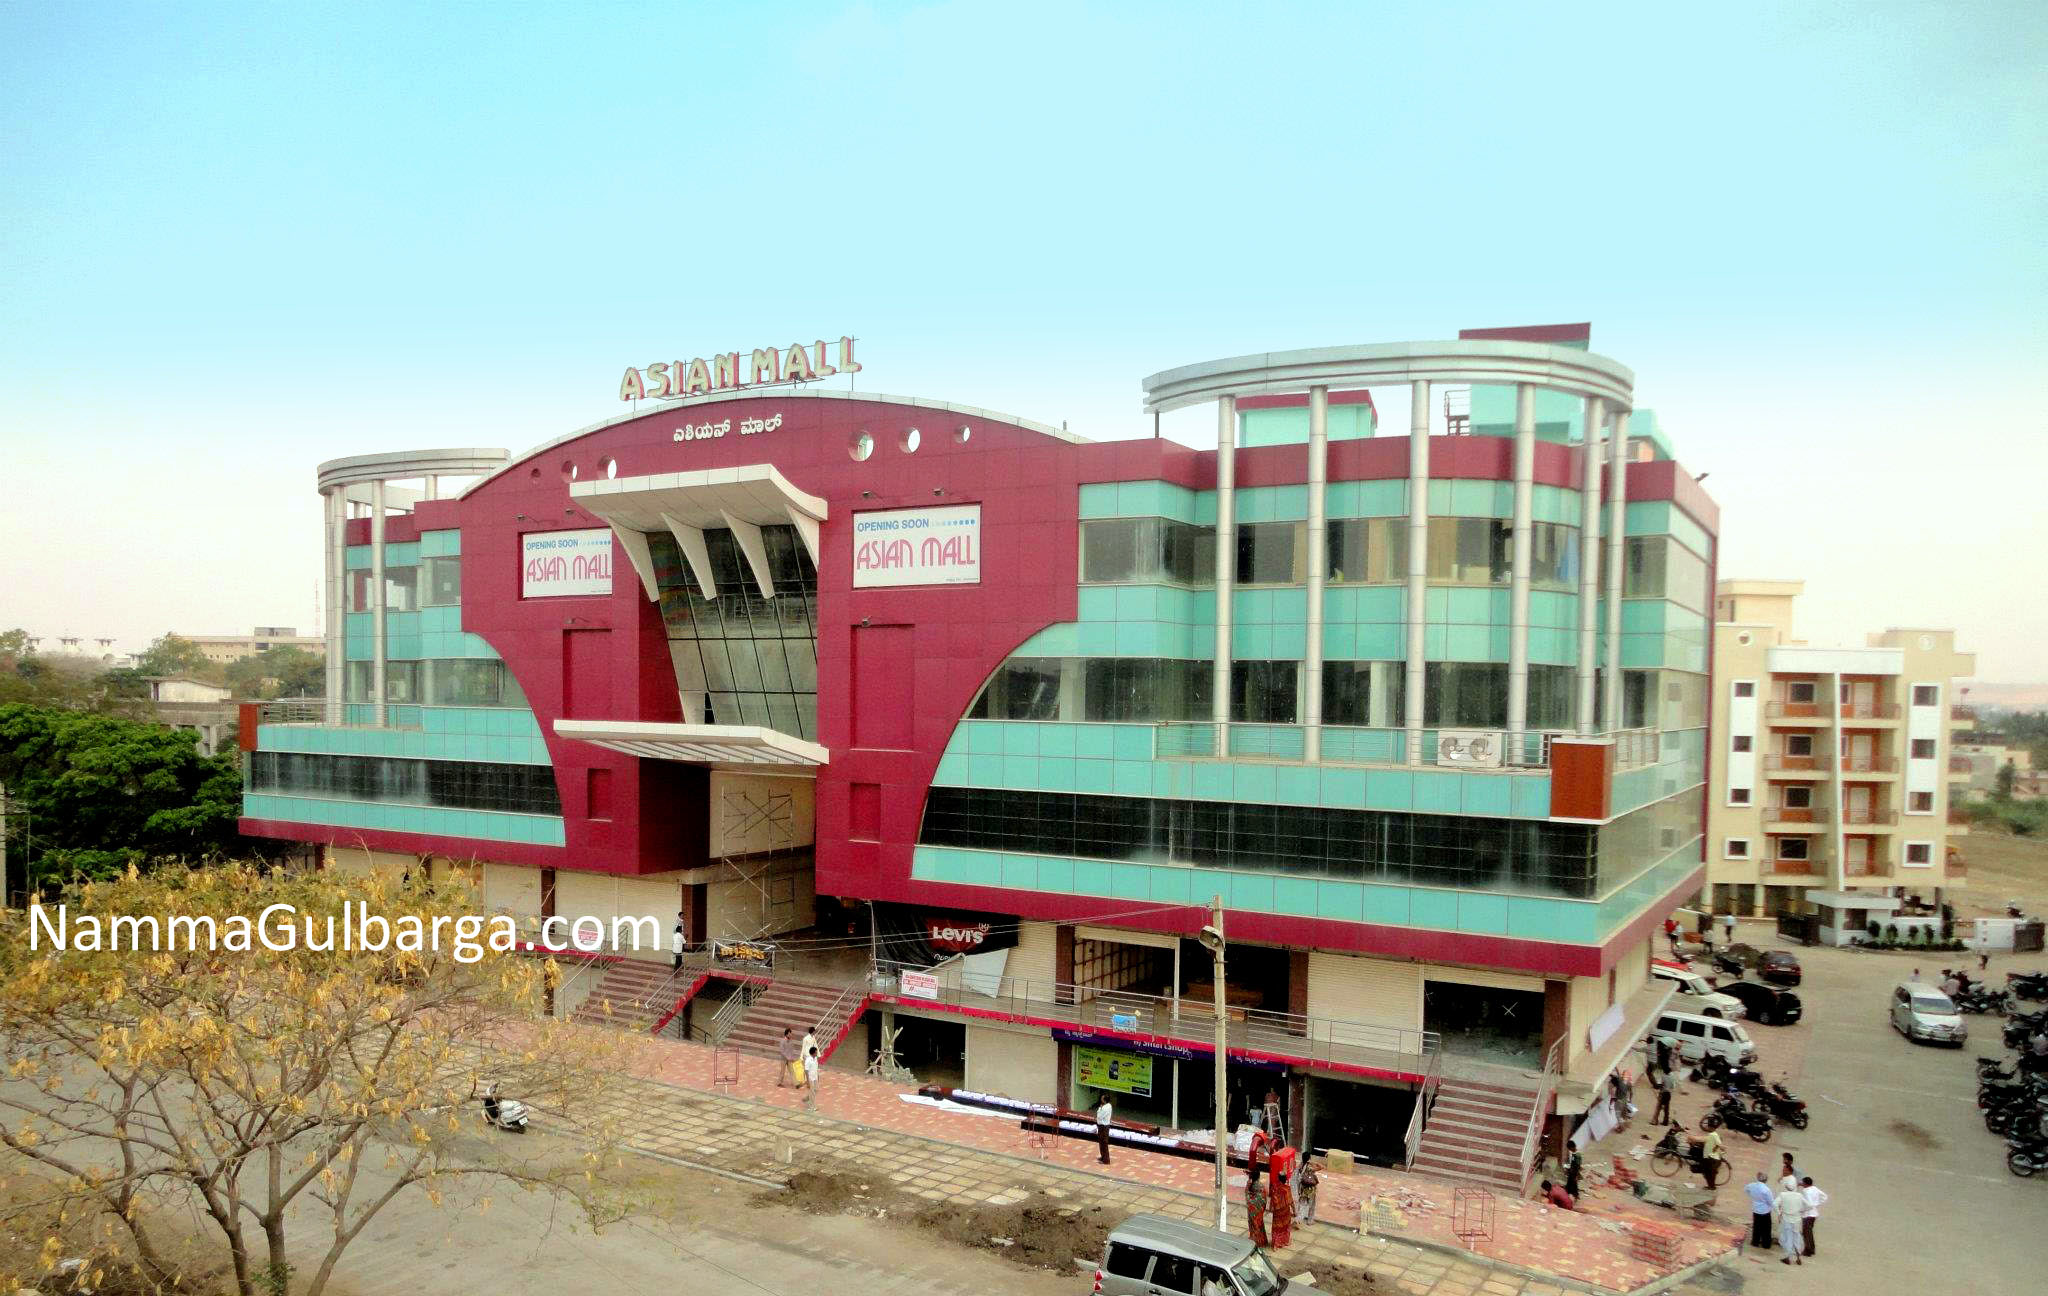 Asian Mall Gulbarga